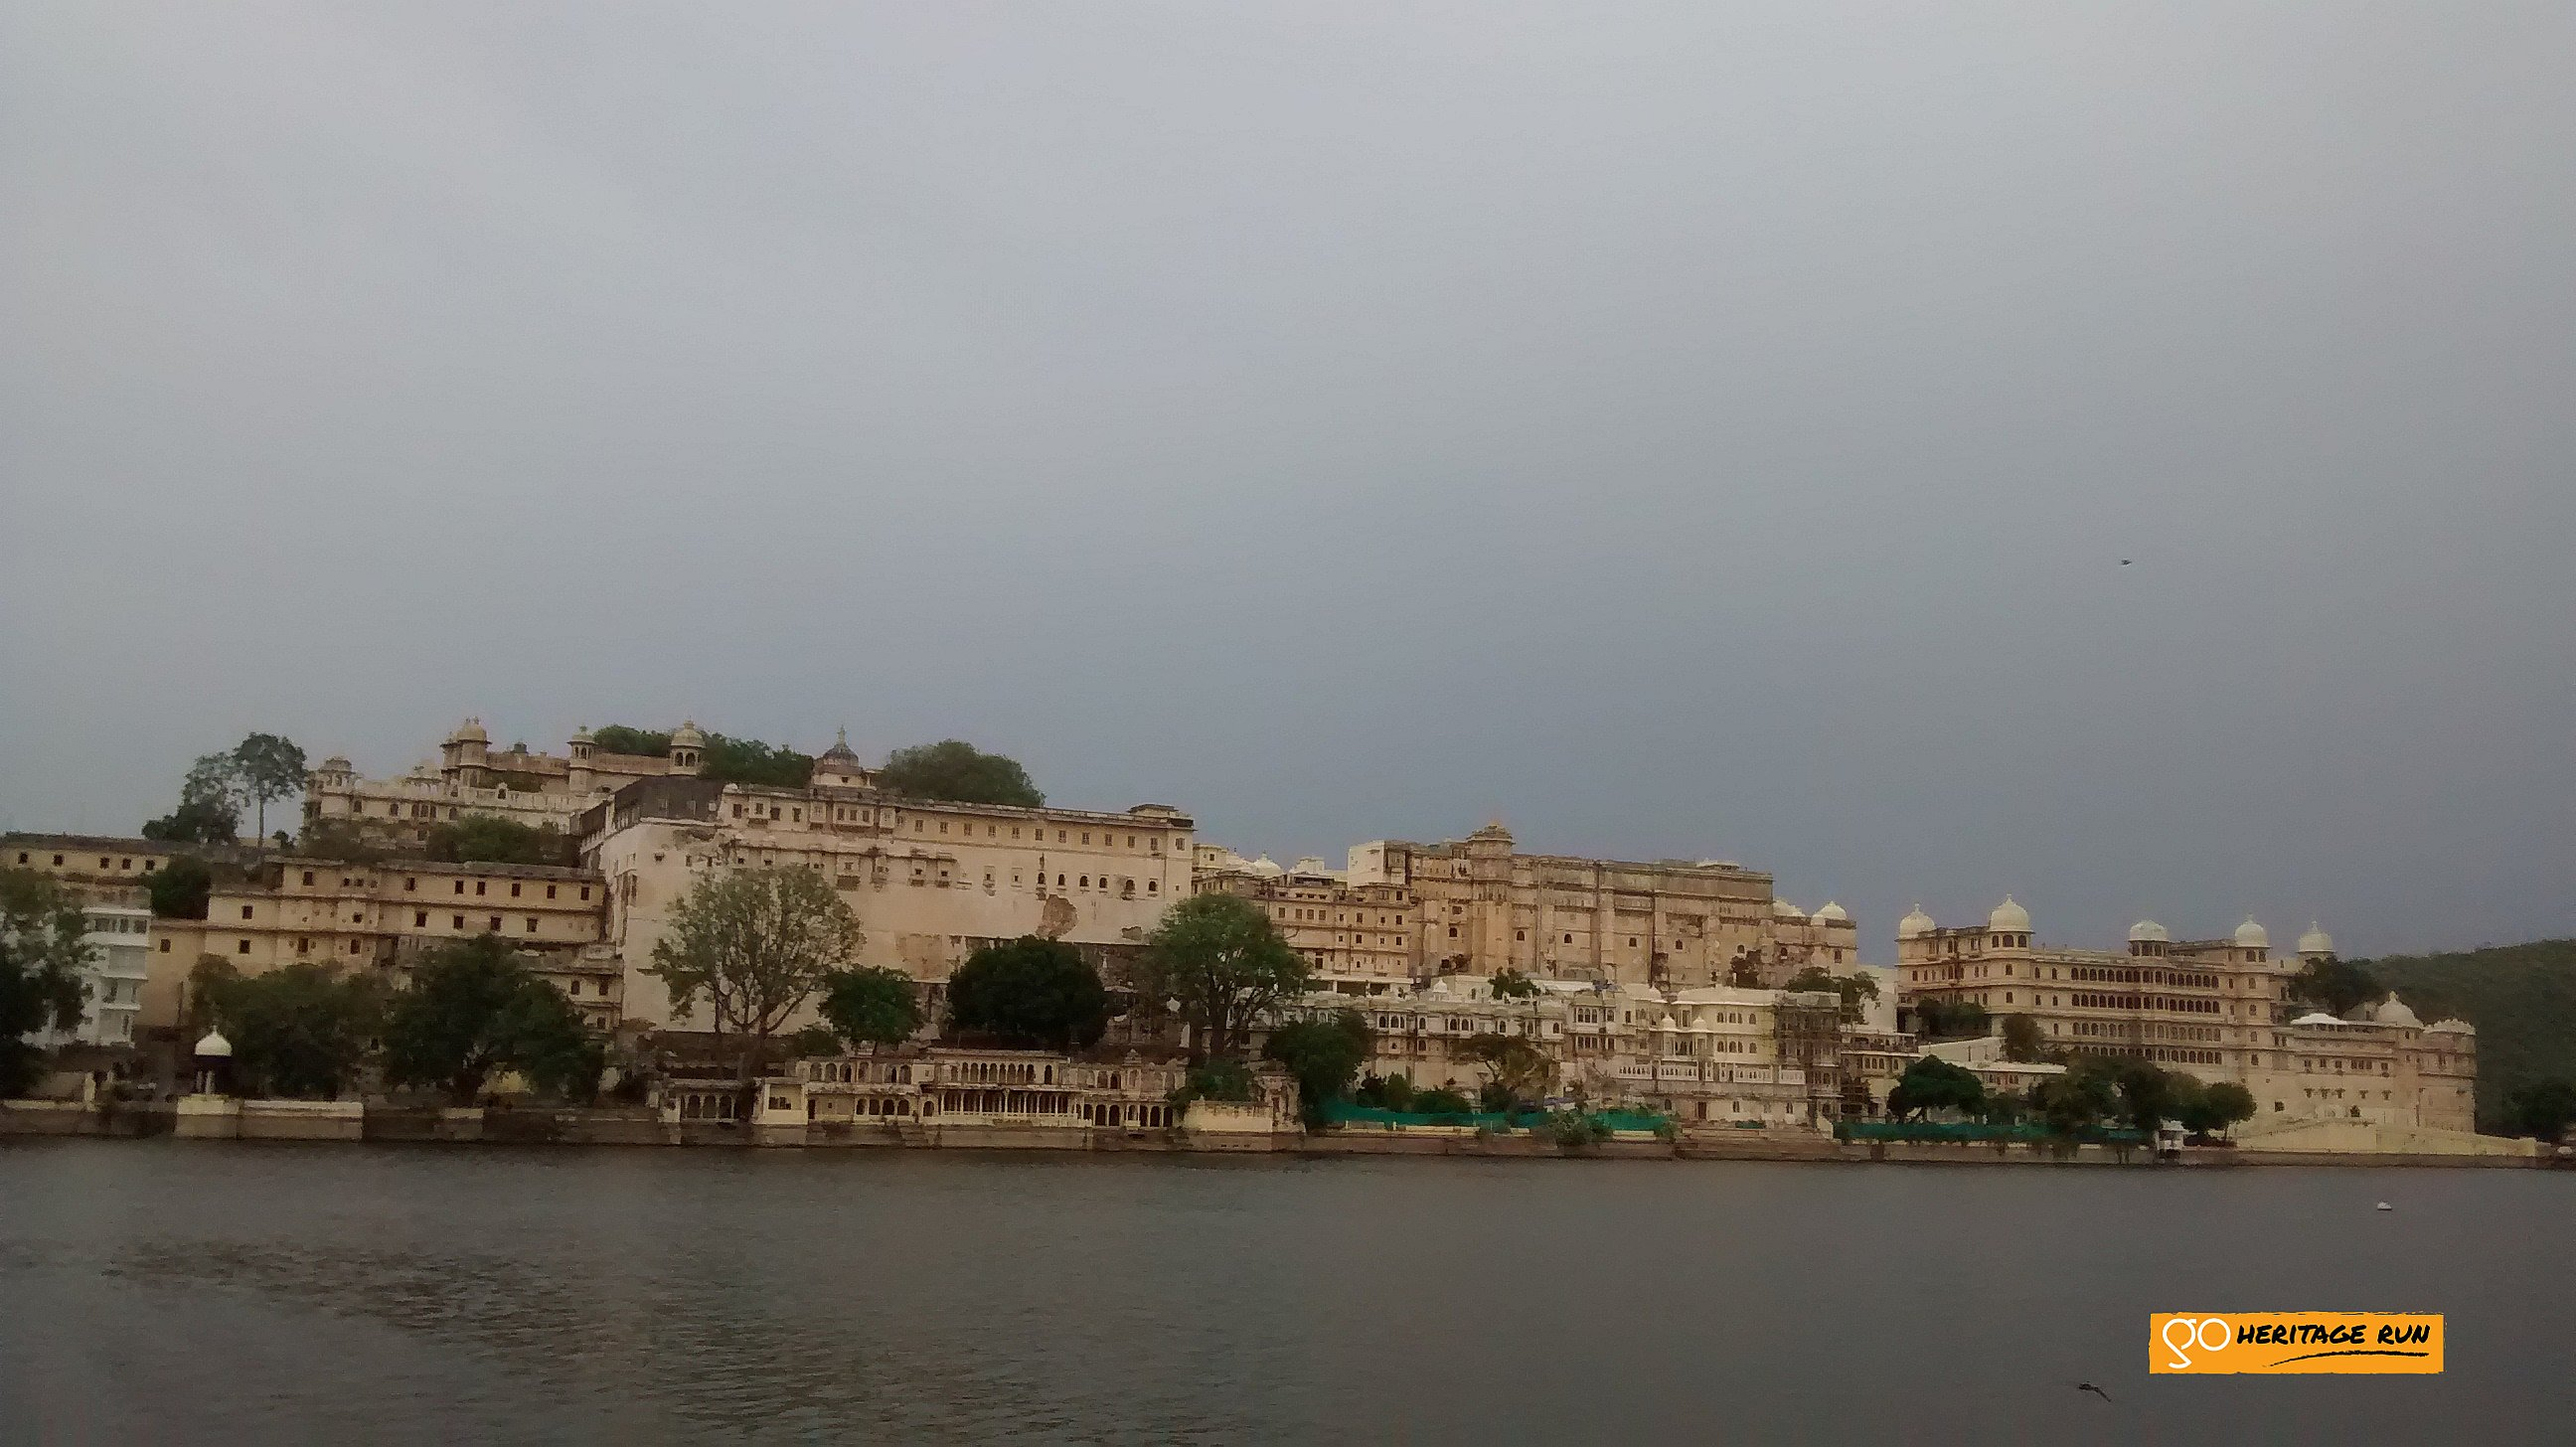 The Udaipur palace complex